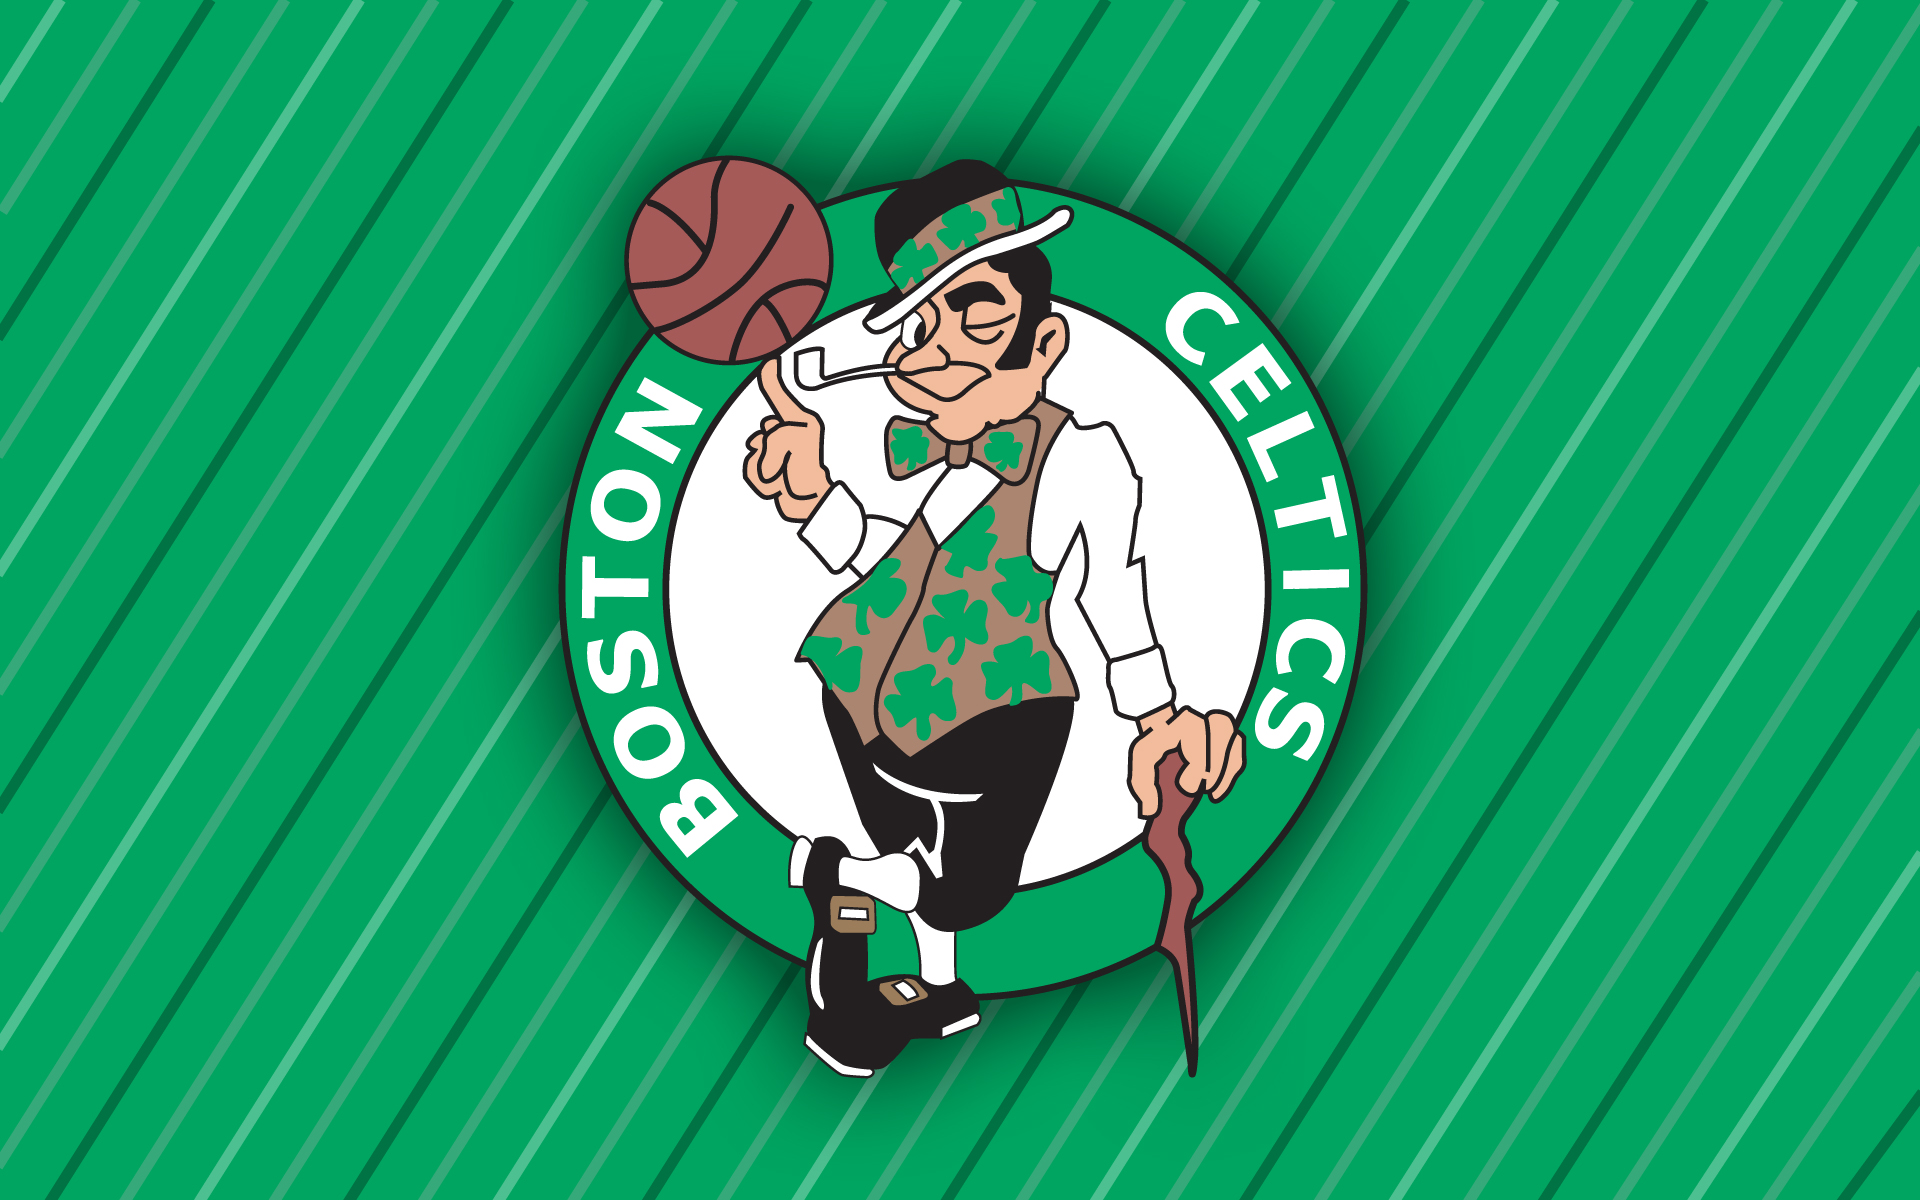 Boston Celtics HD Wallpaper | Background Image | 1920x1200 | ID:981953 - Wallpaper Abyss